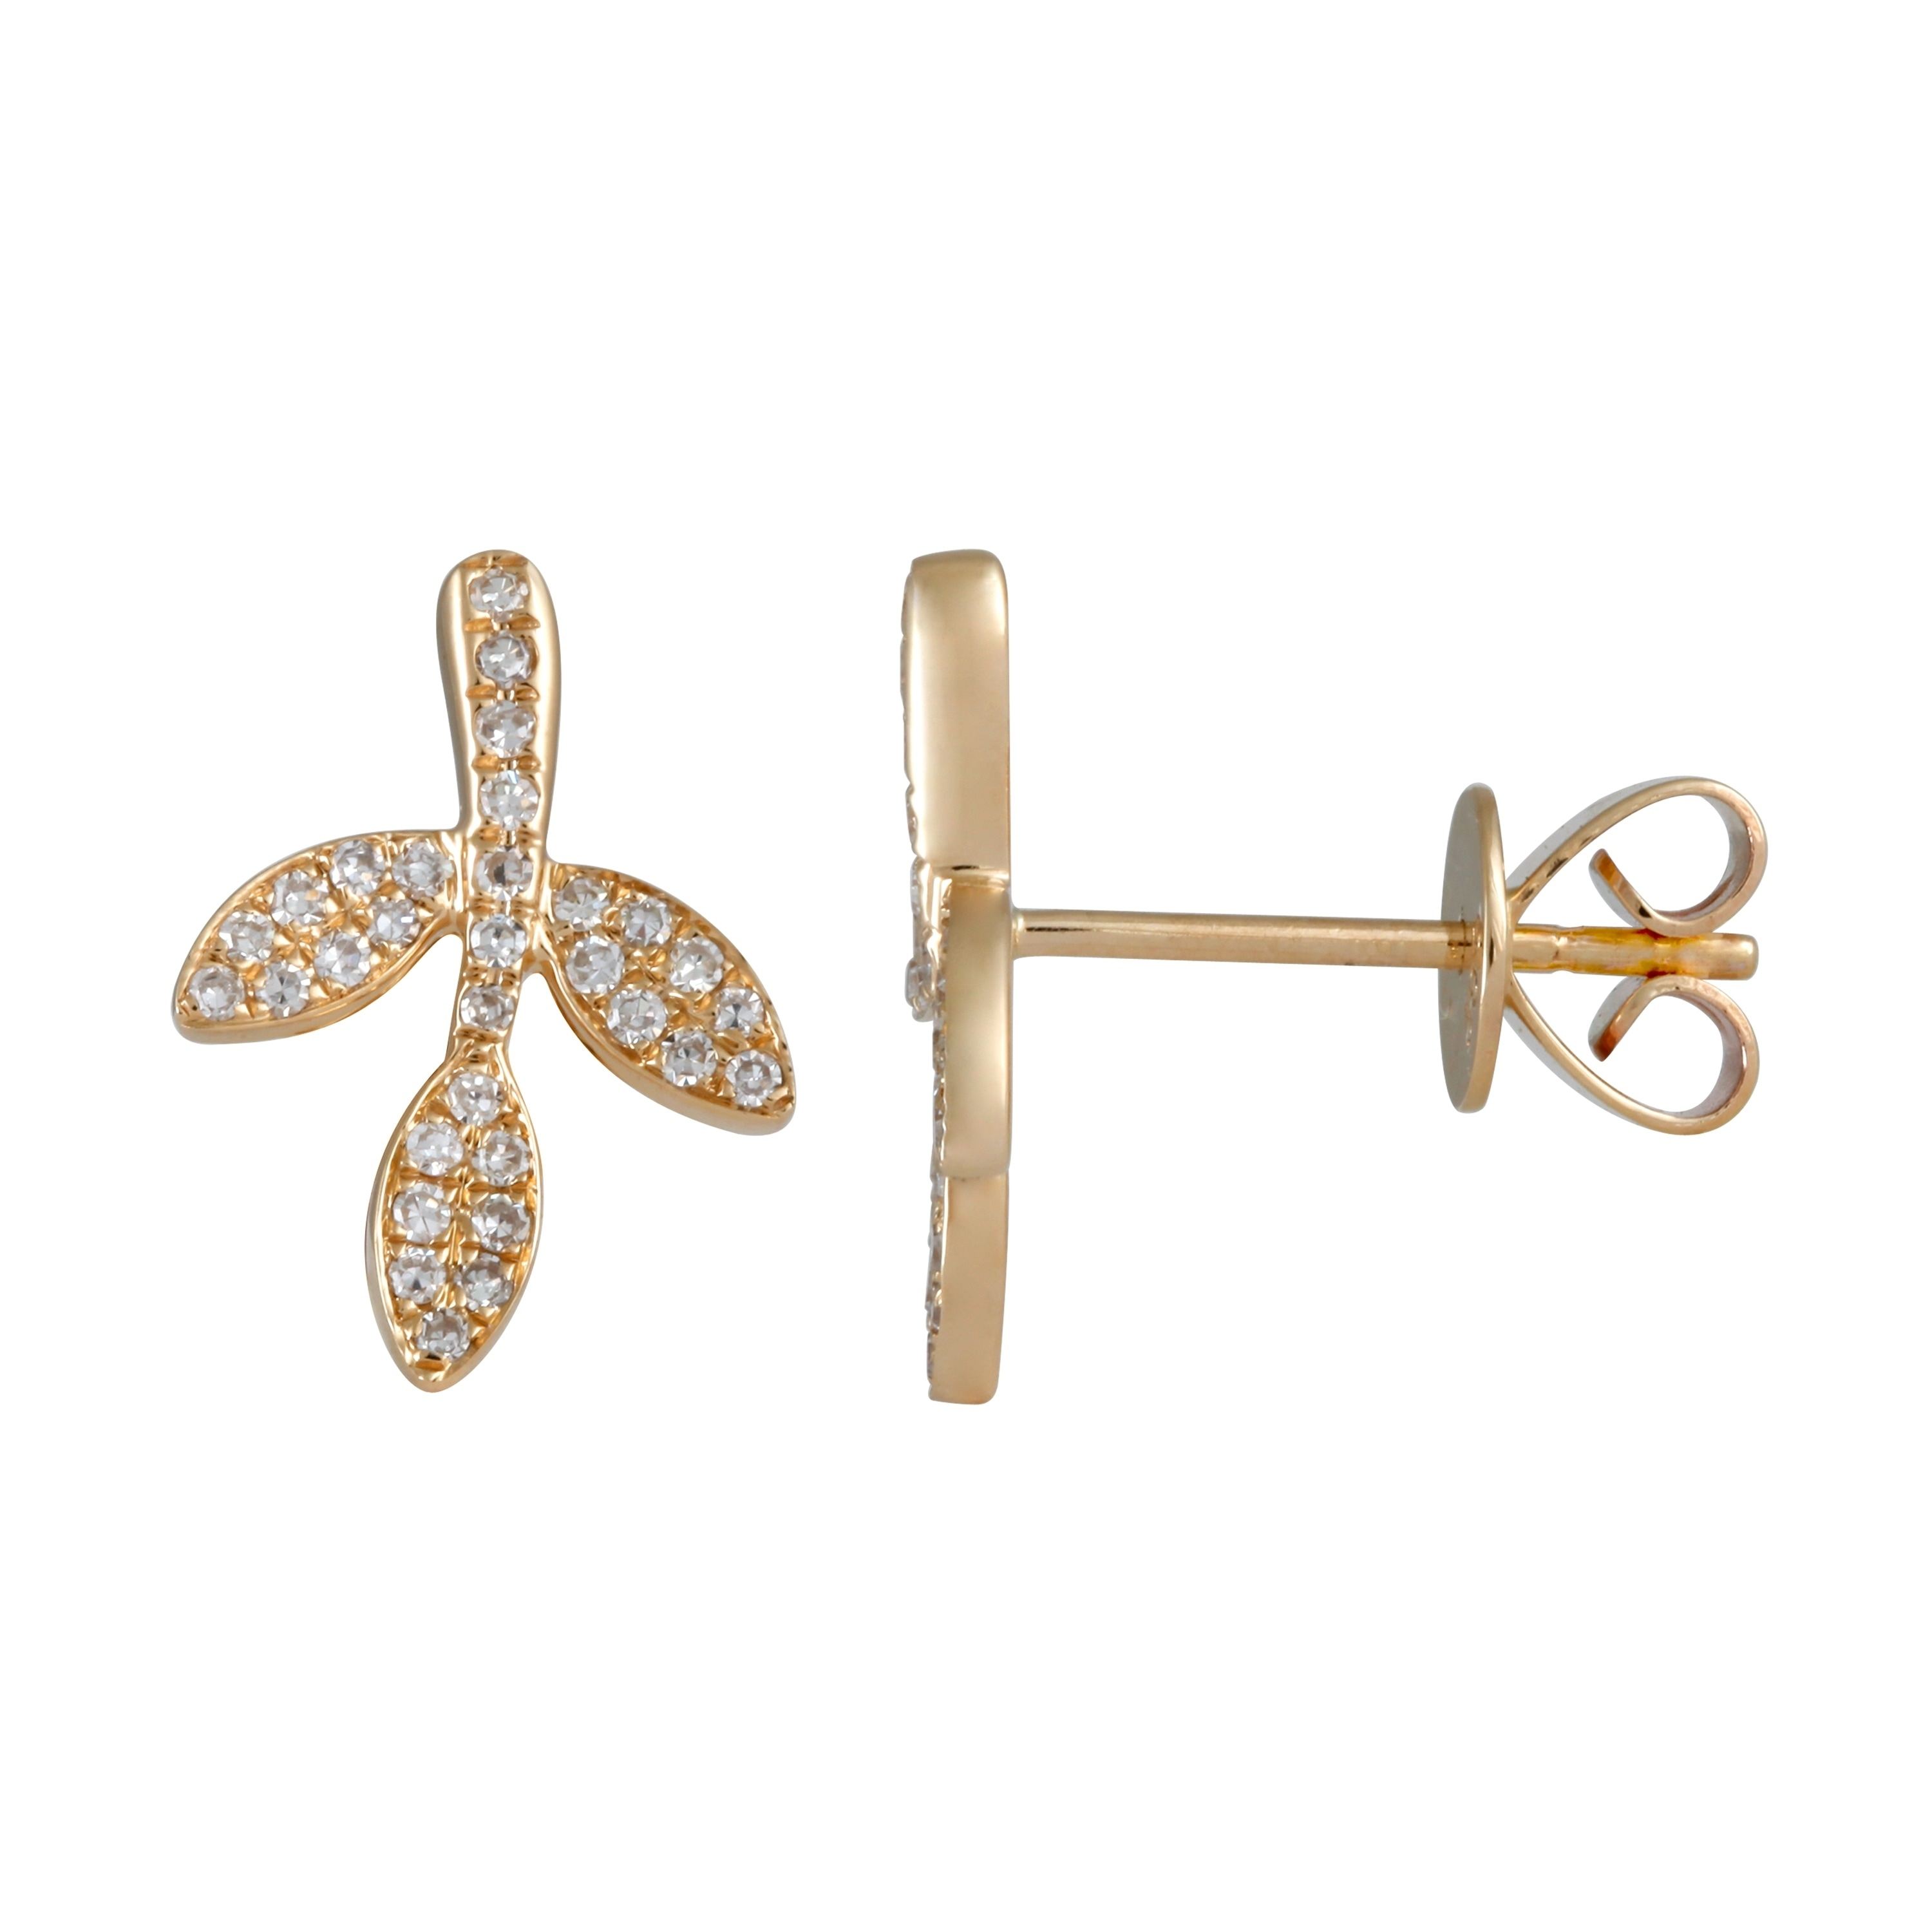 02f7f9f99 Shop Leaf Shaped Stud Earring For Women 14k Yellow Gold 0.2 Ct White  Diamond Earrings - Free Shipping Today - Overstock - 22866996